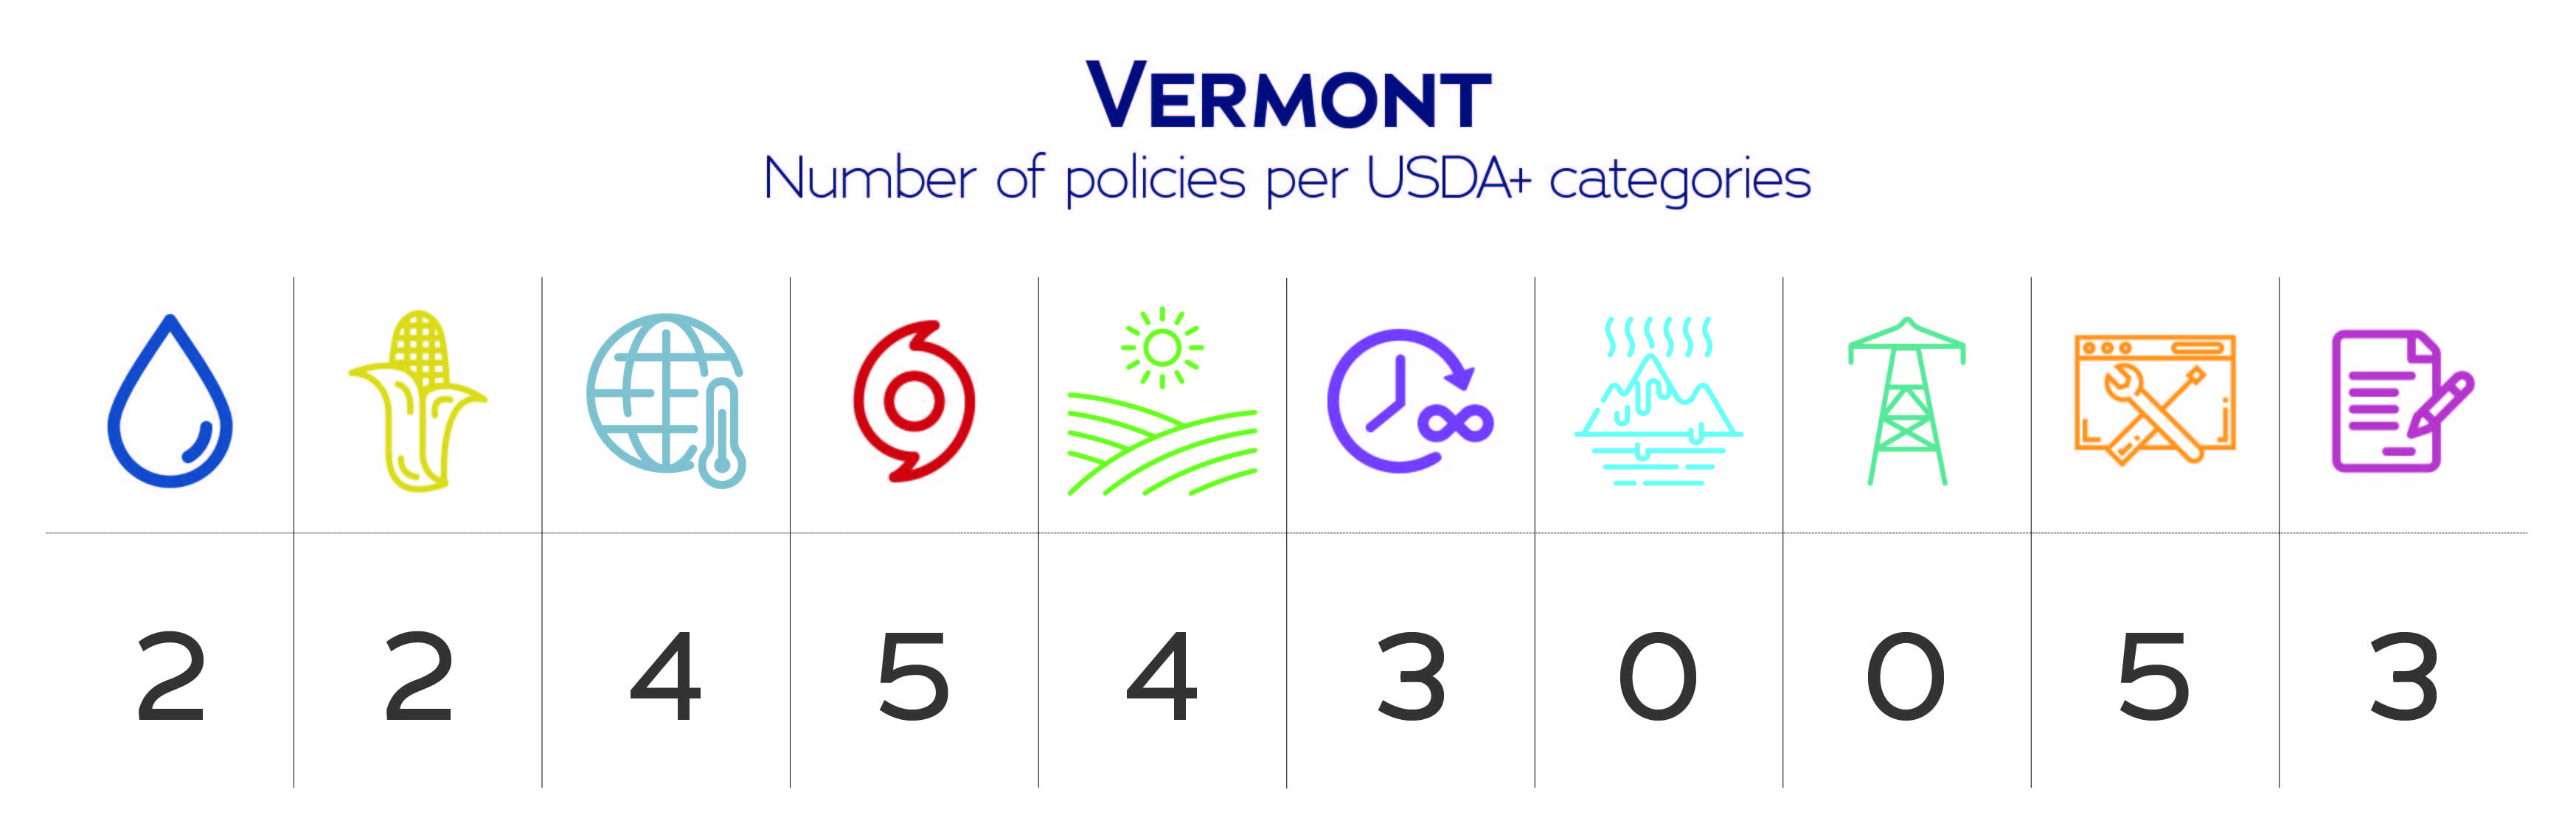 Vermont USDA+ category data